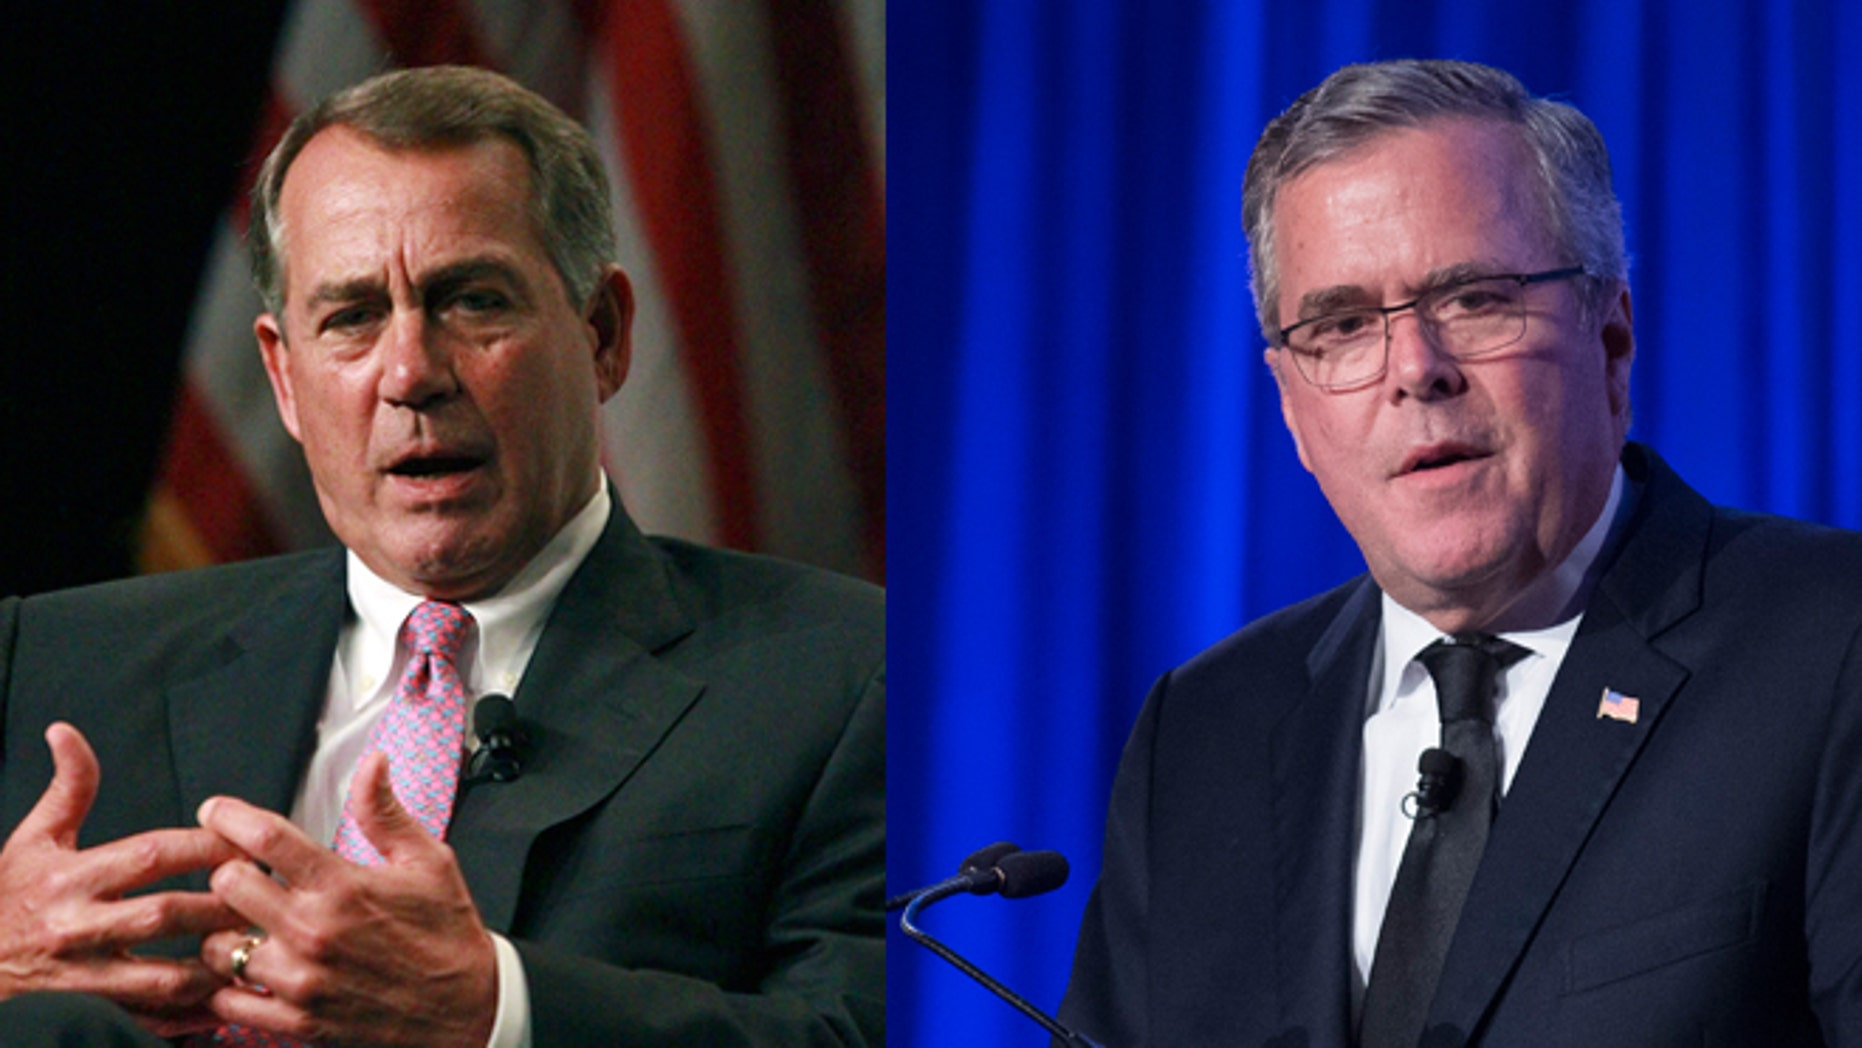 Left: House Speaker John Boehner speaks Monday May 12, 2014 at the Marriott Rivercenter in San Antonio. (AP Photo/San Antonio Express-News, John Davenport, Pool) Right: Former Florida Gov. Jeb Bush speaks at the Manhattan Institute for Policy Research Alexander Hamilton Award Dinner, Monday, May 12, 2014, in New York. (AP Photo/John Minchillo)